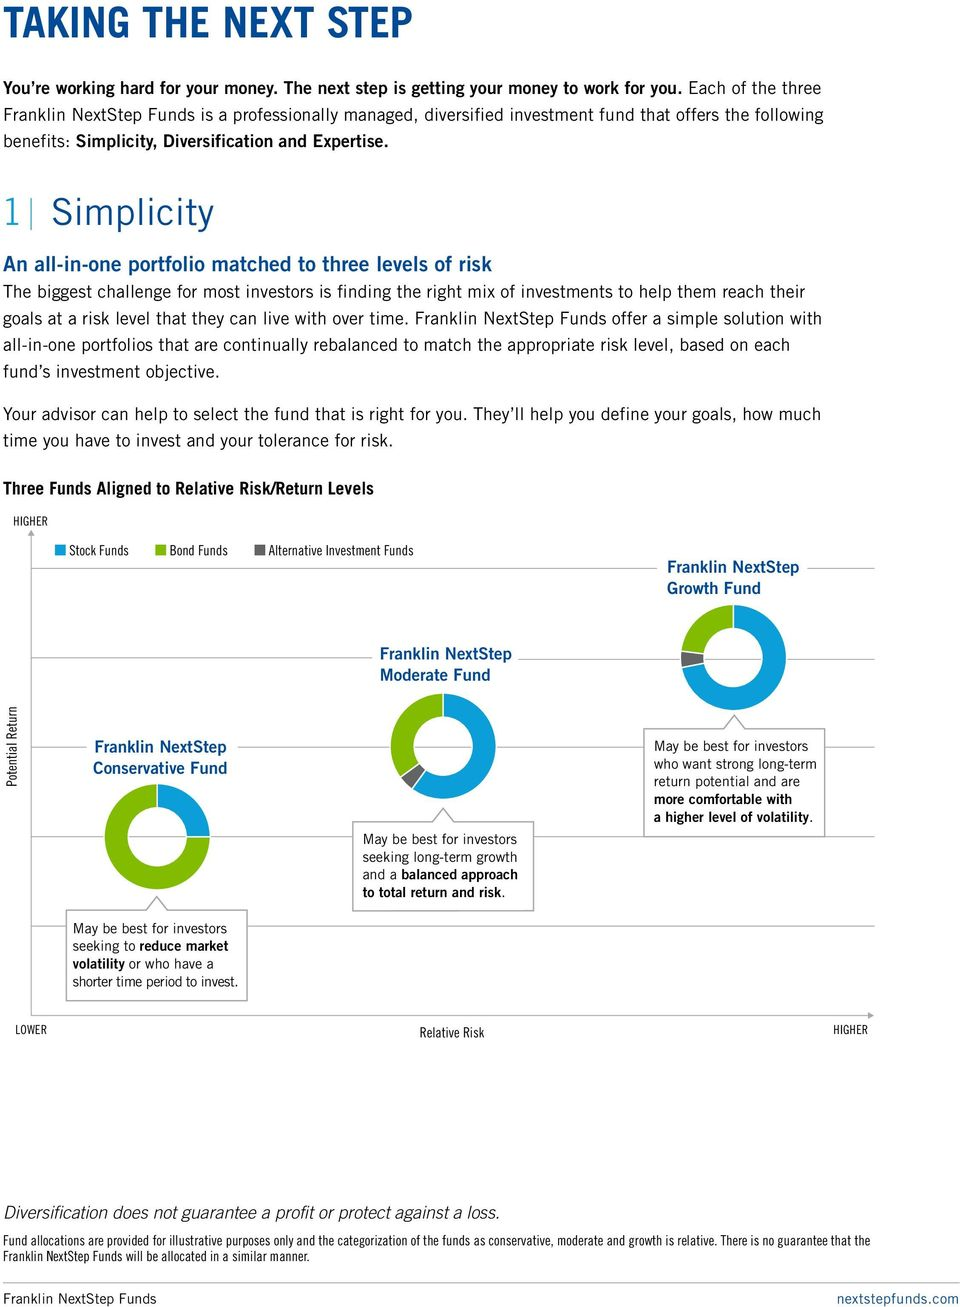 1 Simplicity An all-in-one portfolio matched to three levels of risk The biggest challenge for most investors is finding the right mix of investments to help them reach their goals at a risk level